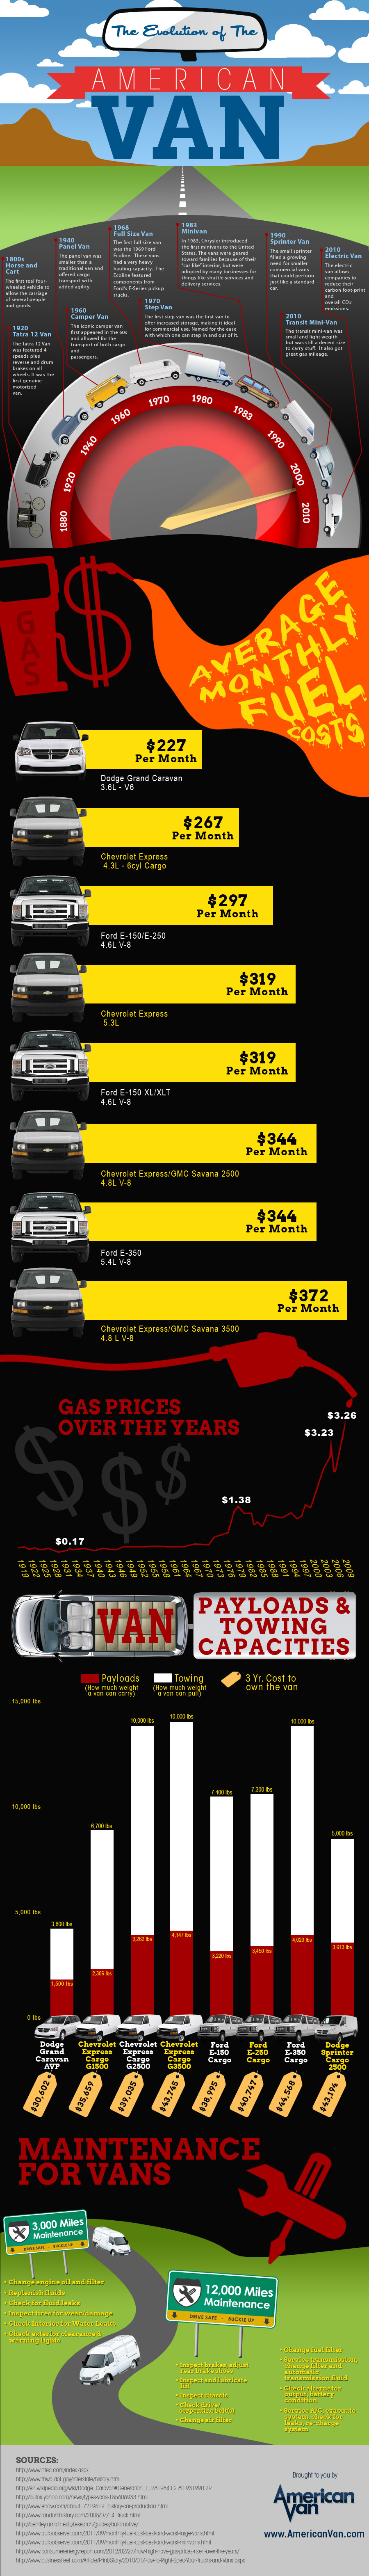 the-evolution-of-the-american-van-infographic_50f6e79d9929b